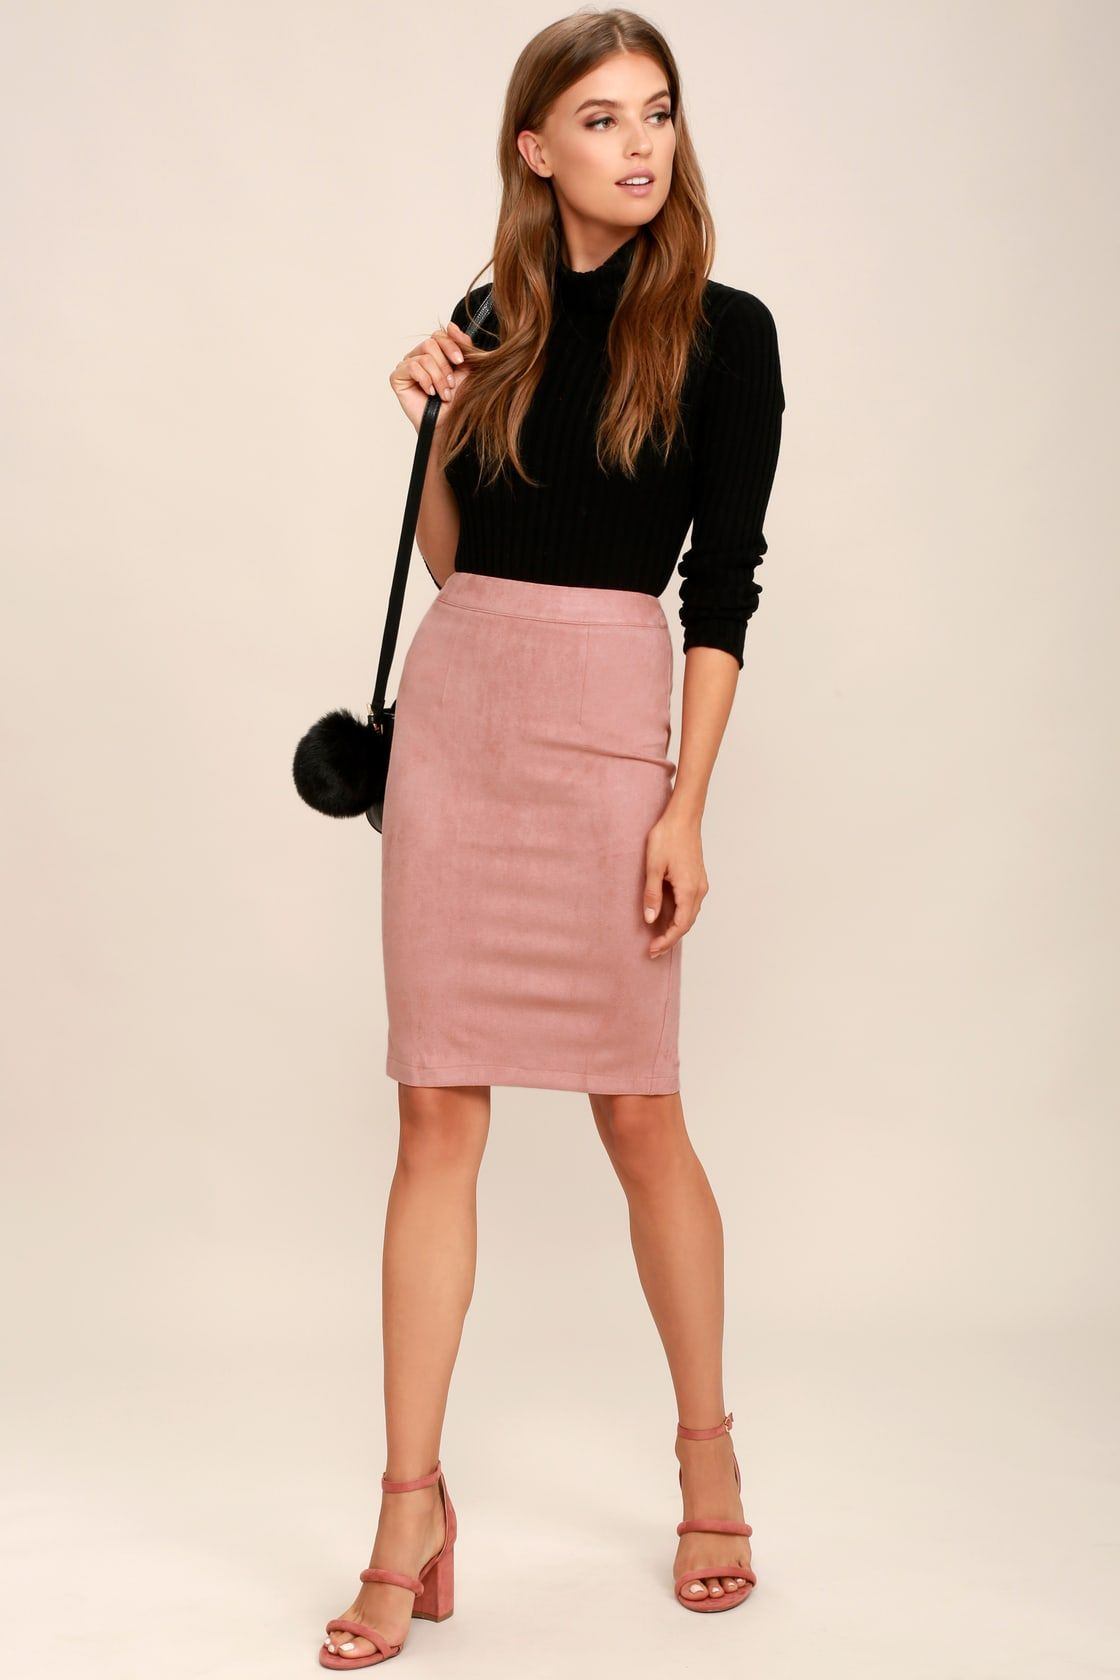 7ec4b38e9 Lulus | Superpower Blush Suede Pencil Skirt | Size X-Small | Pink ...